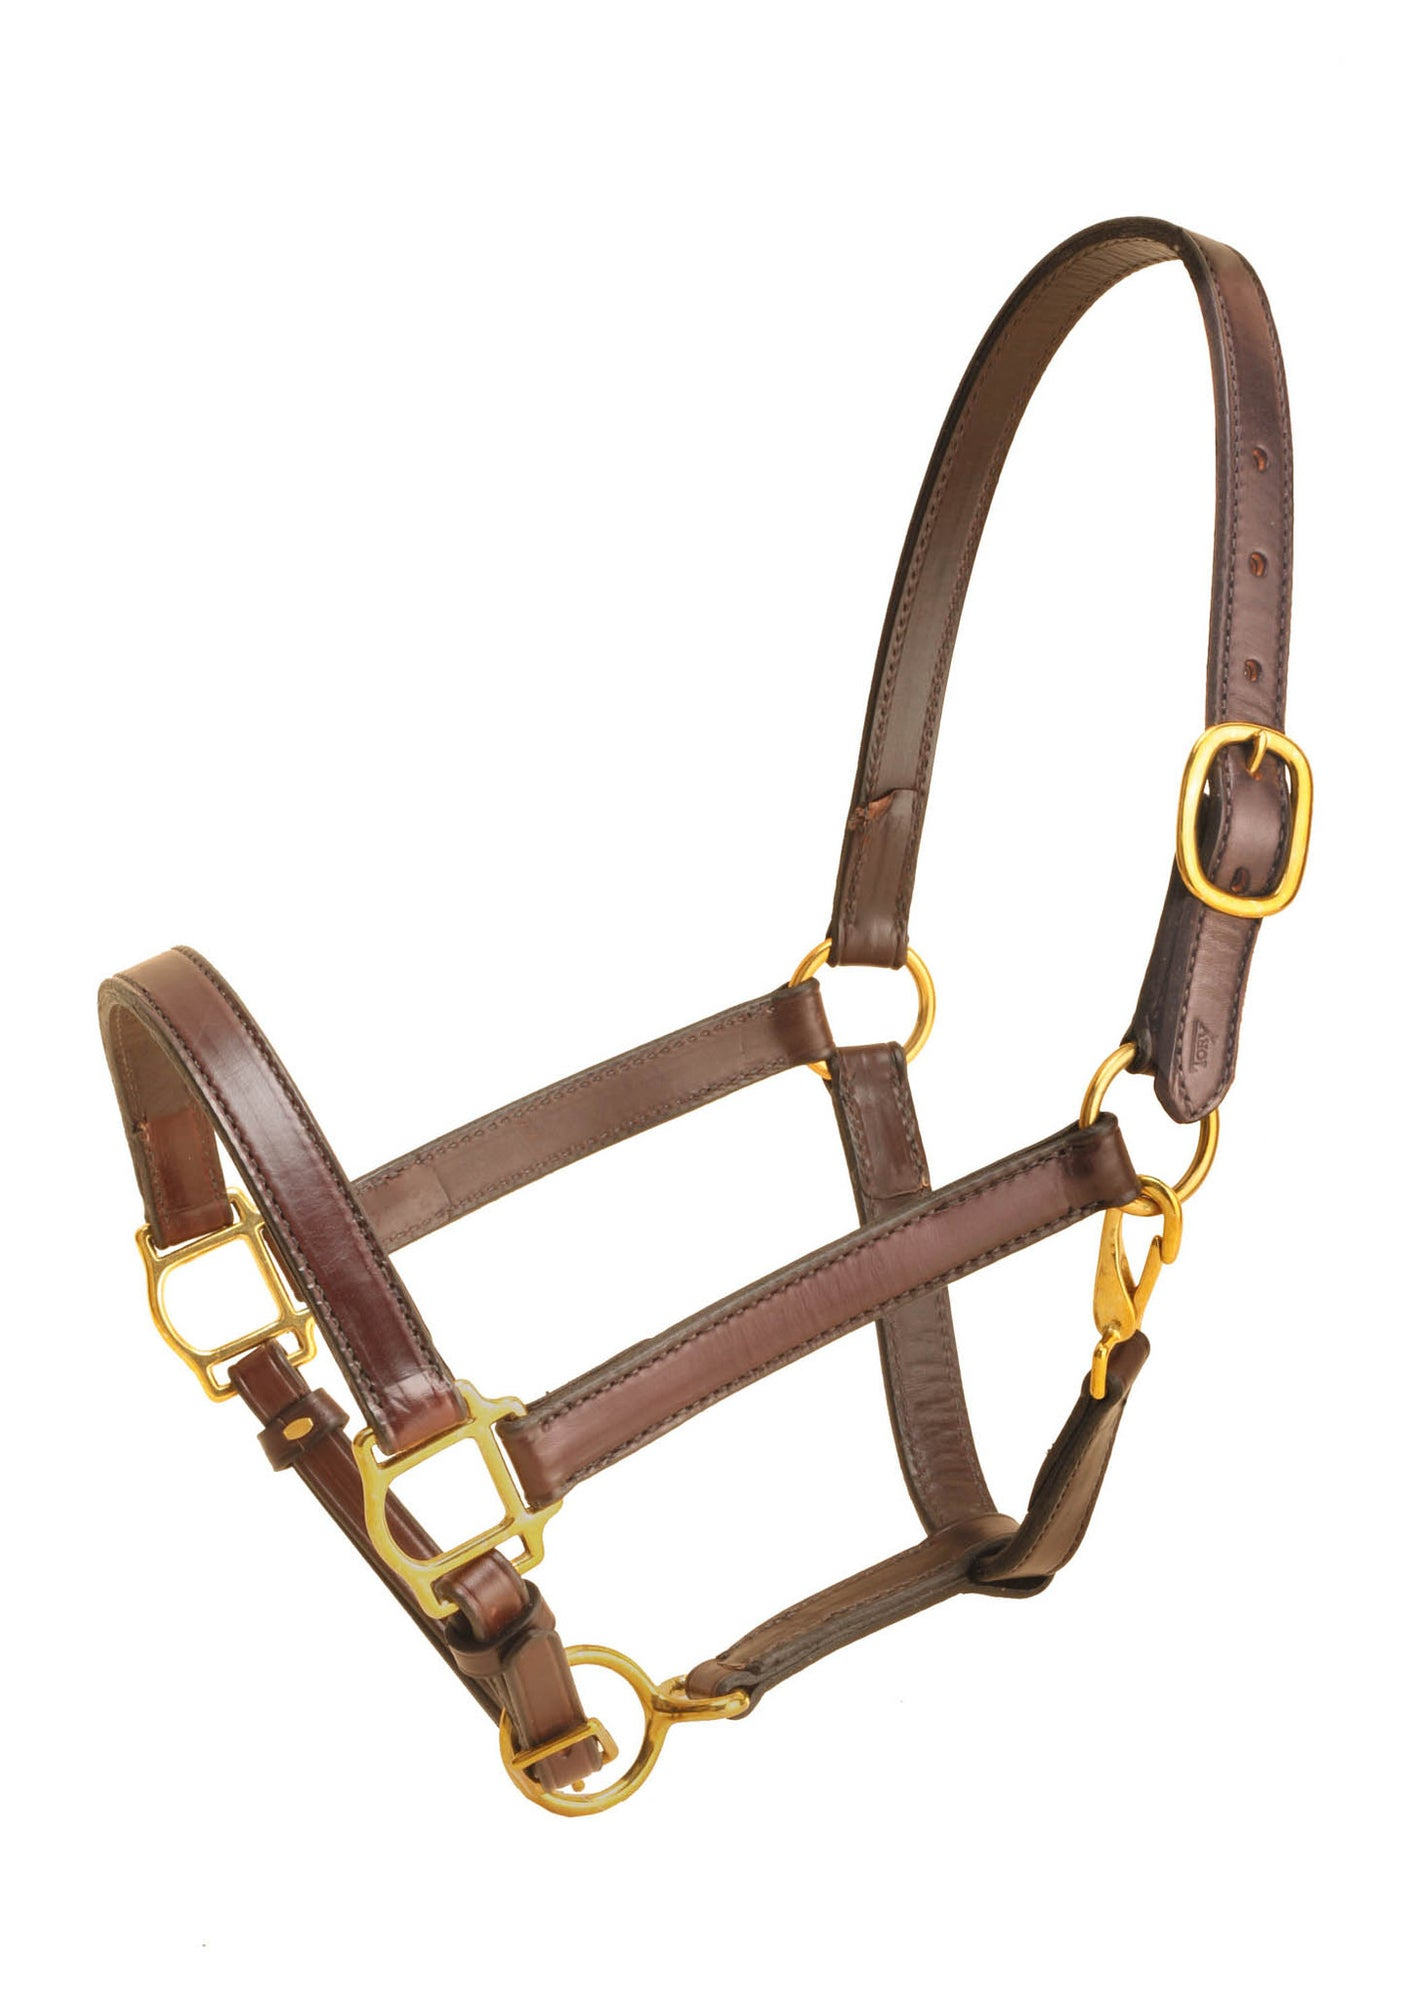 "1"" Cob Halter With Single Crown Buckle, Snap Throat"